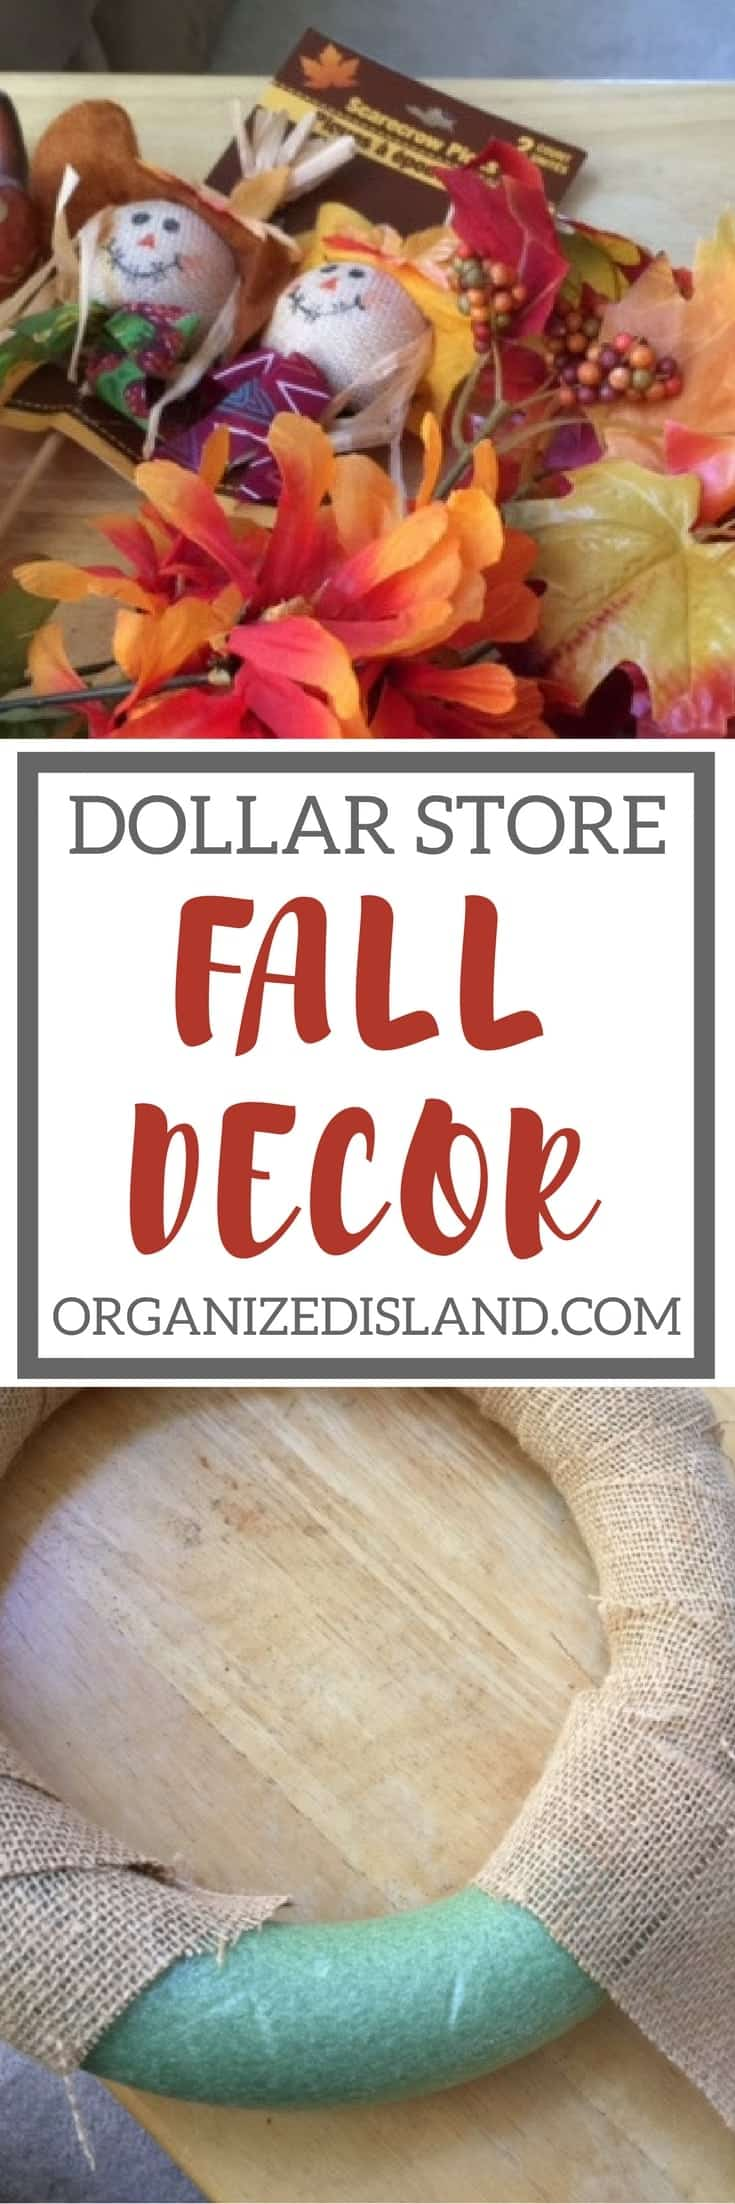 20 minute dollar store decor looking for some cheap fall decor ideas this site has tons of ideas izmirmasajfo